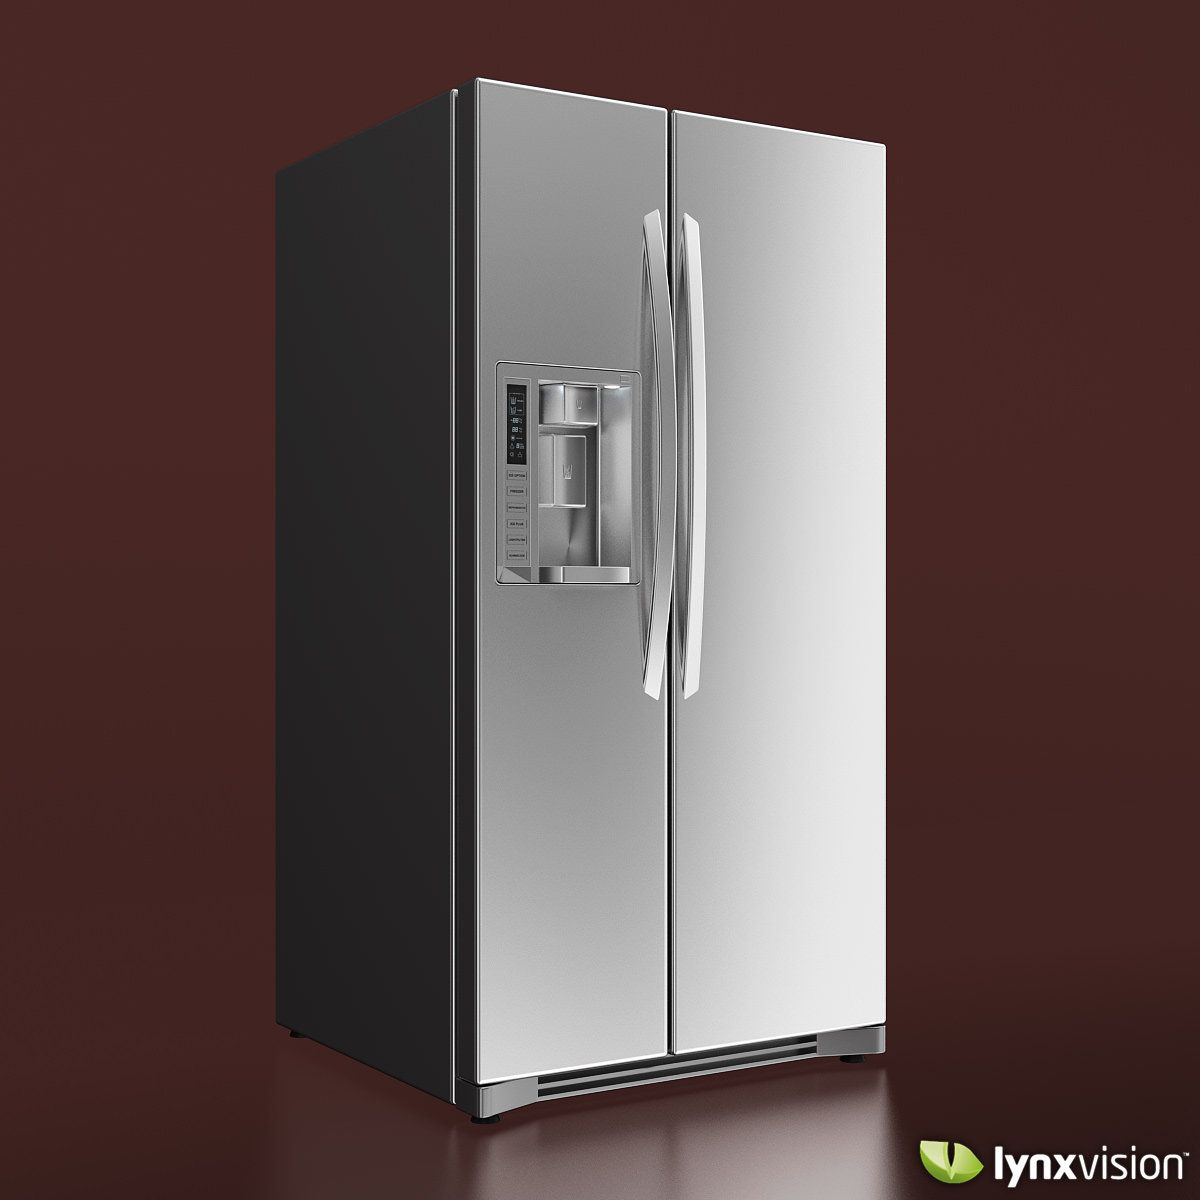 3d Model Lg Side By Side Refrigerator Cgtrader